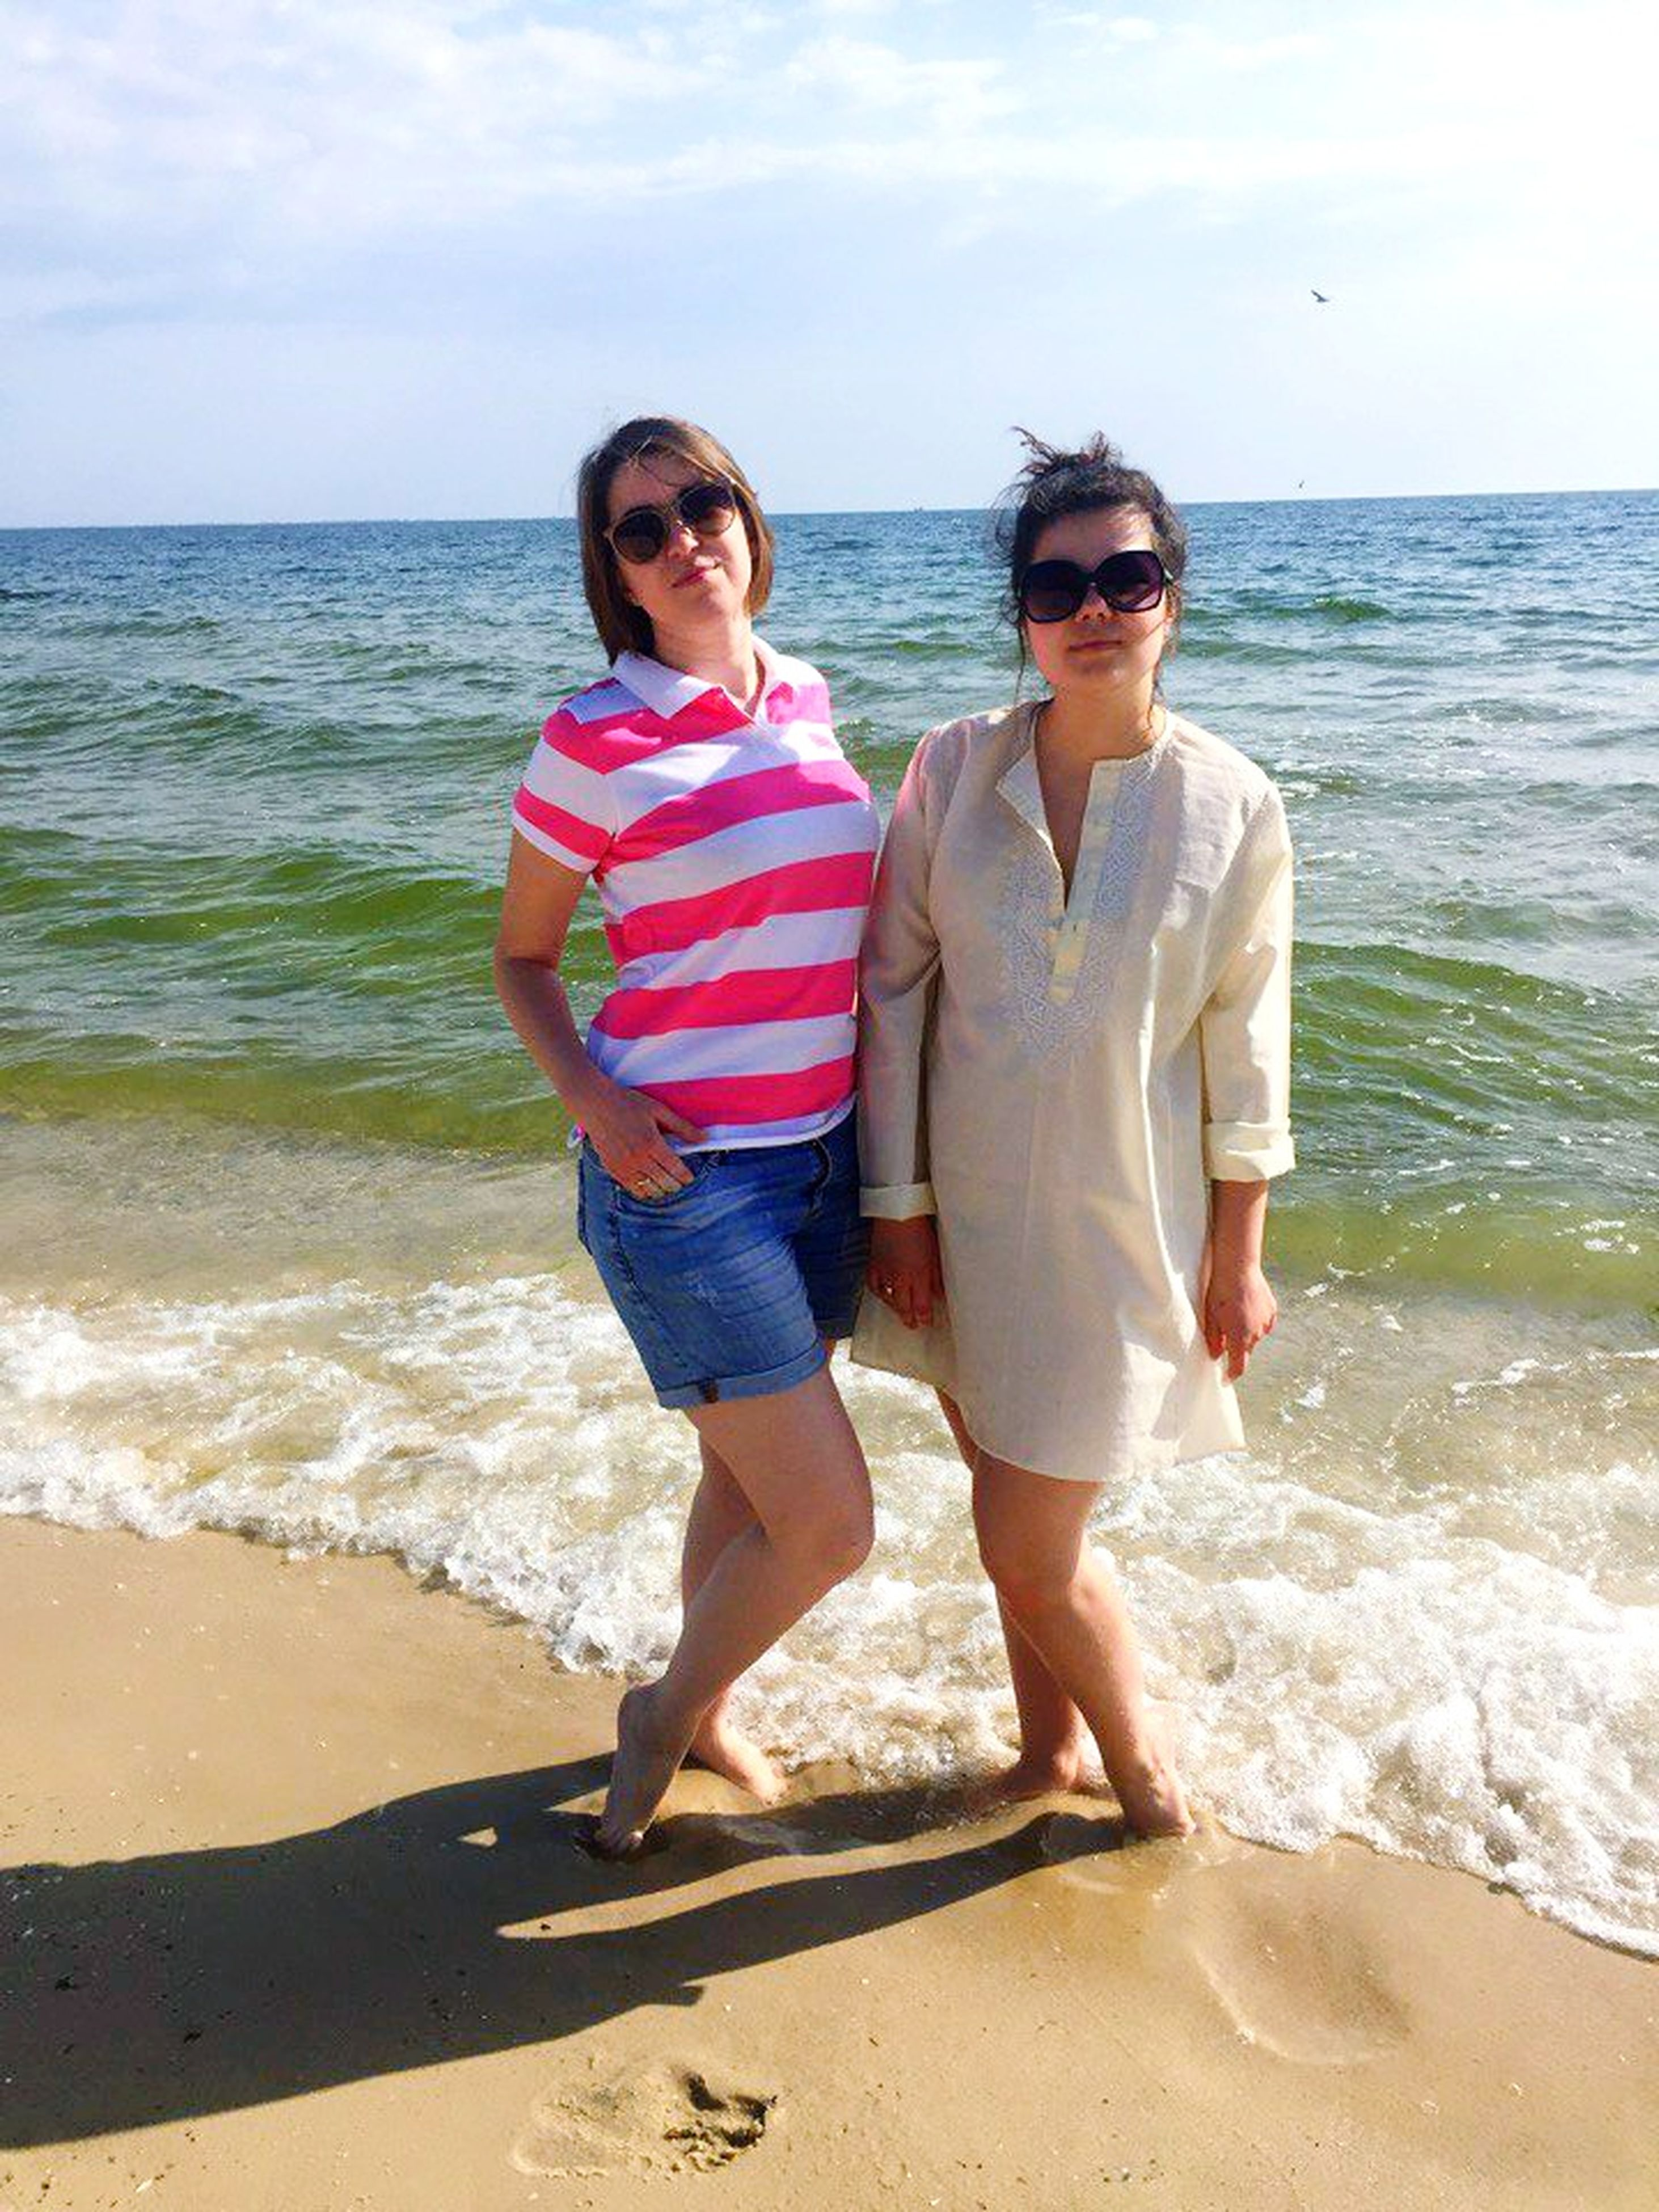 sea, two people, beach, sunglasses, horizon over water, young women, young men, young adult, leisure activity, full length, sand, real people, water, togetherness, sky, day, casual clothing, front view, nature, vacations, outdoors, standing, lifestyles, happiness, scenics, smiling, beauty in nature